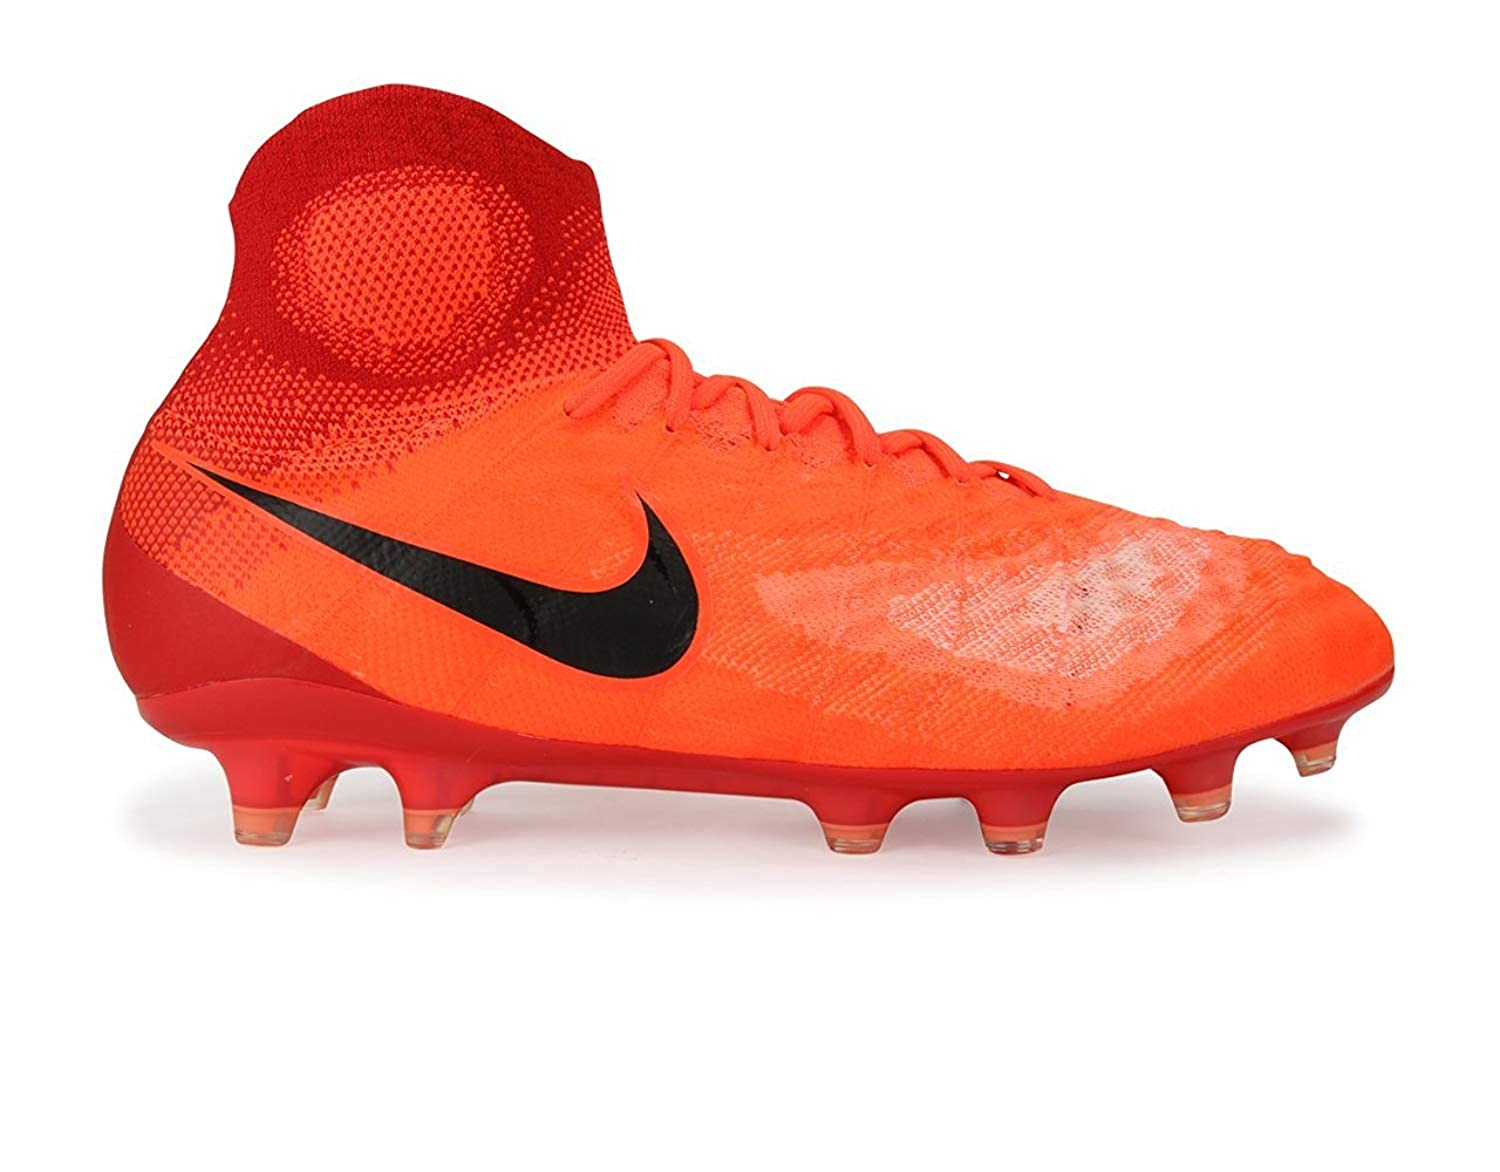 b9682becd Amazon.com | Nike Kids Magista Obra II FG Total Crimson/Black/University  Red Soccer Shoes | Soccer